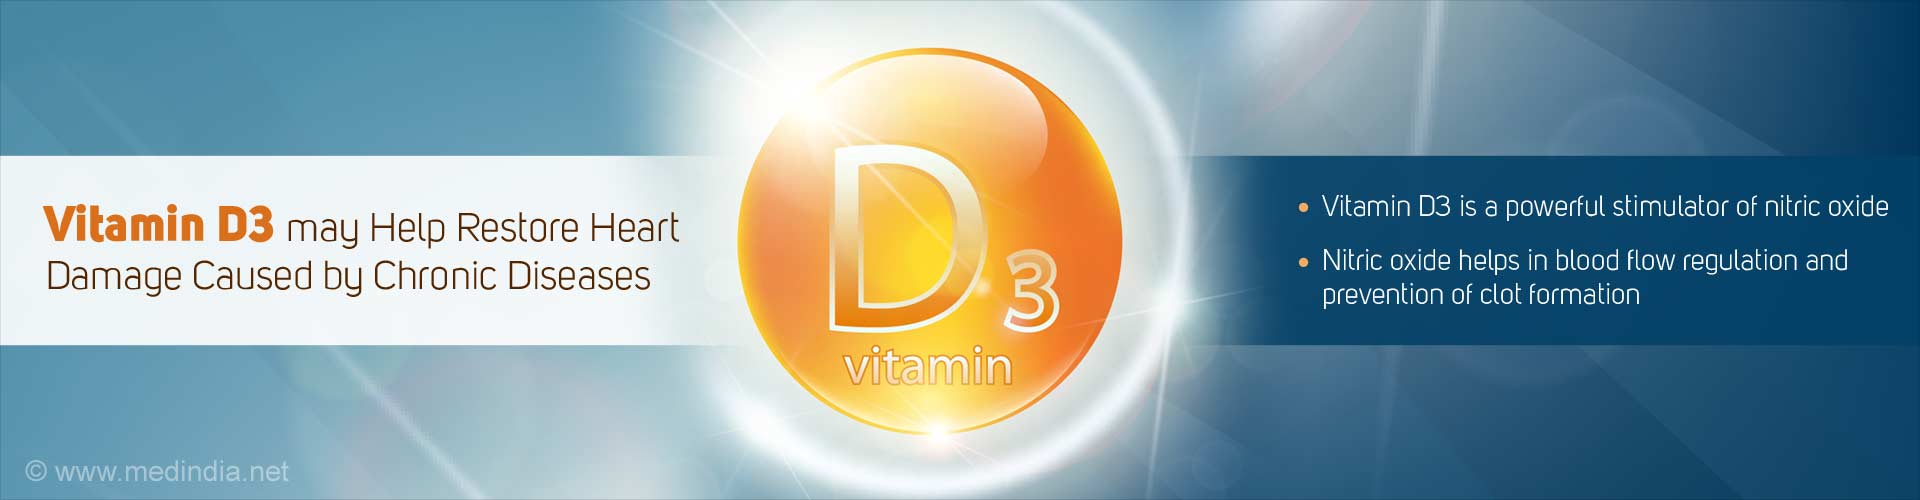 Vitamin D3 present in the Sun may Help Restore Heart Damage